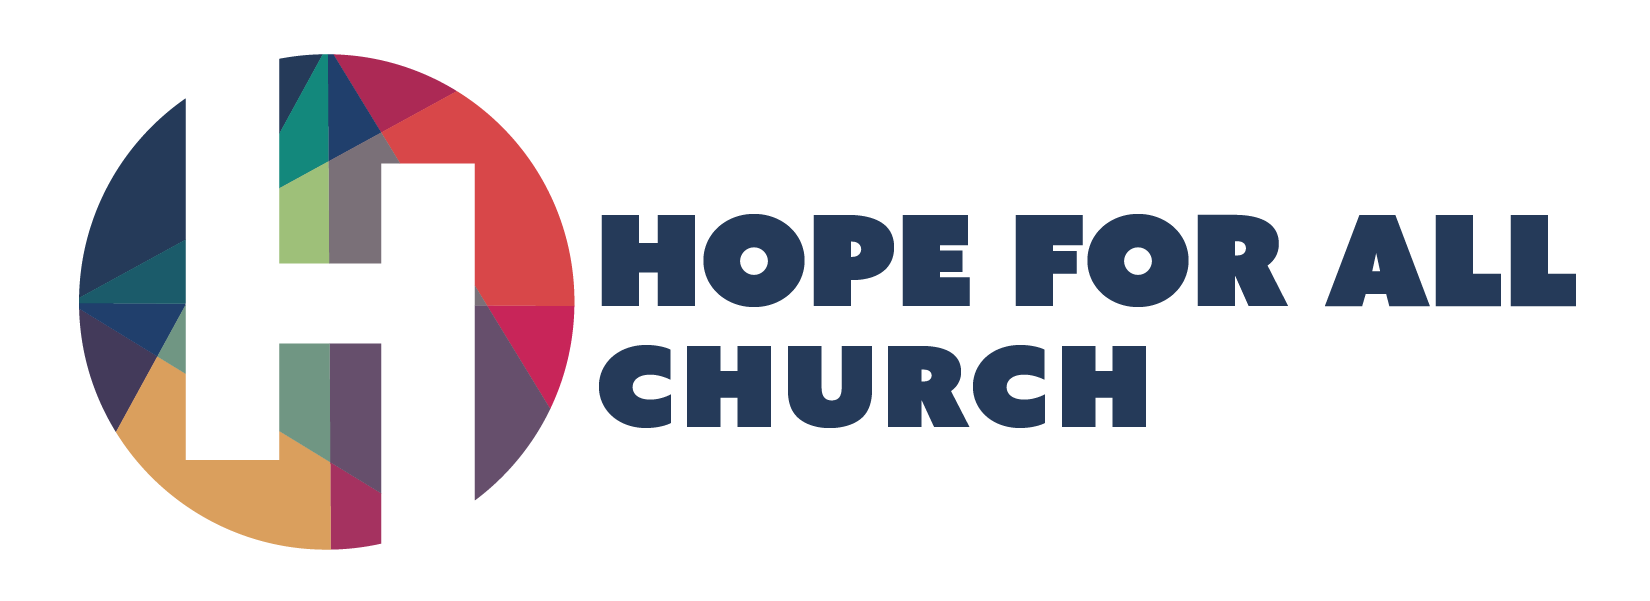 Hope for All Church